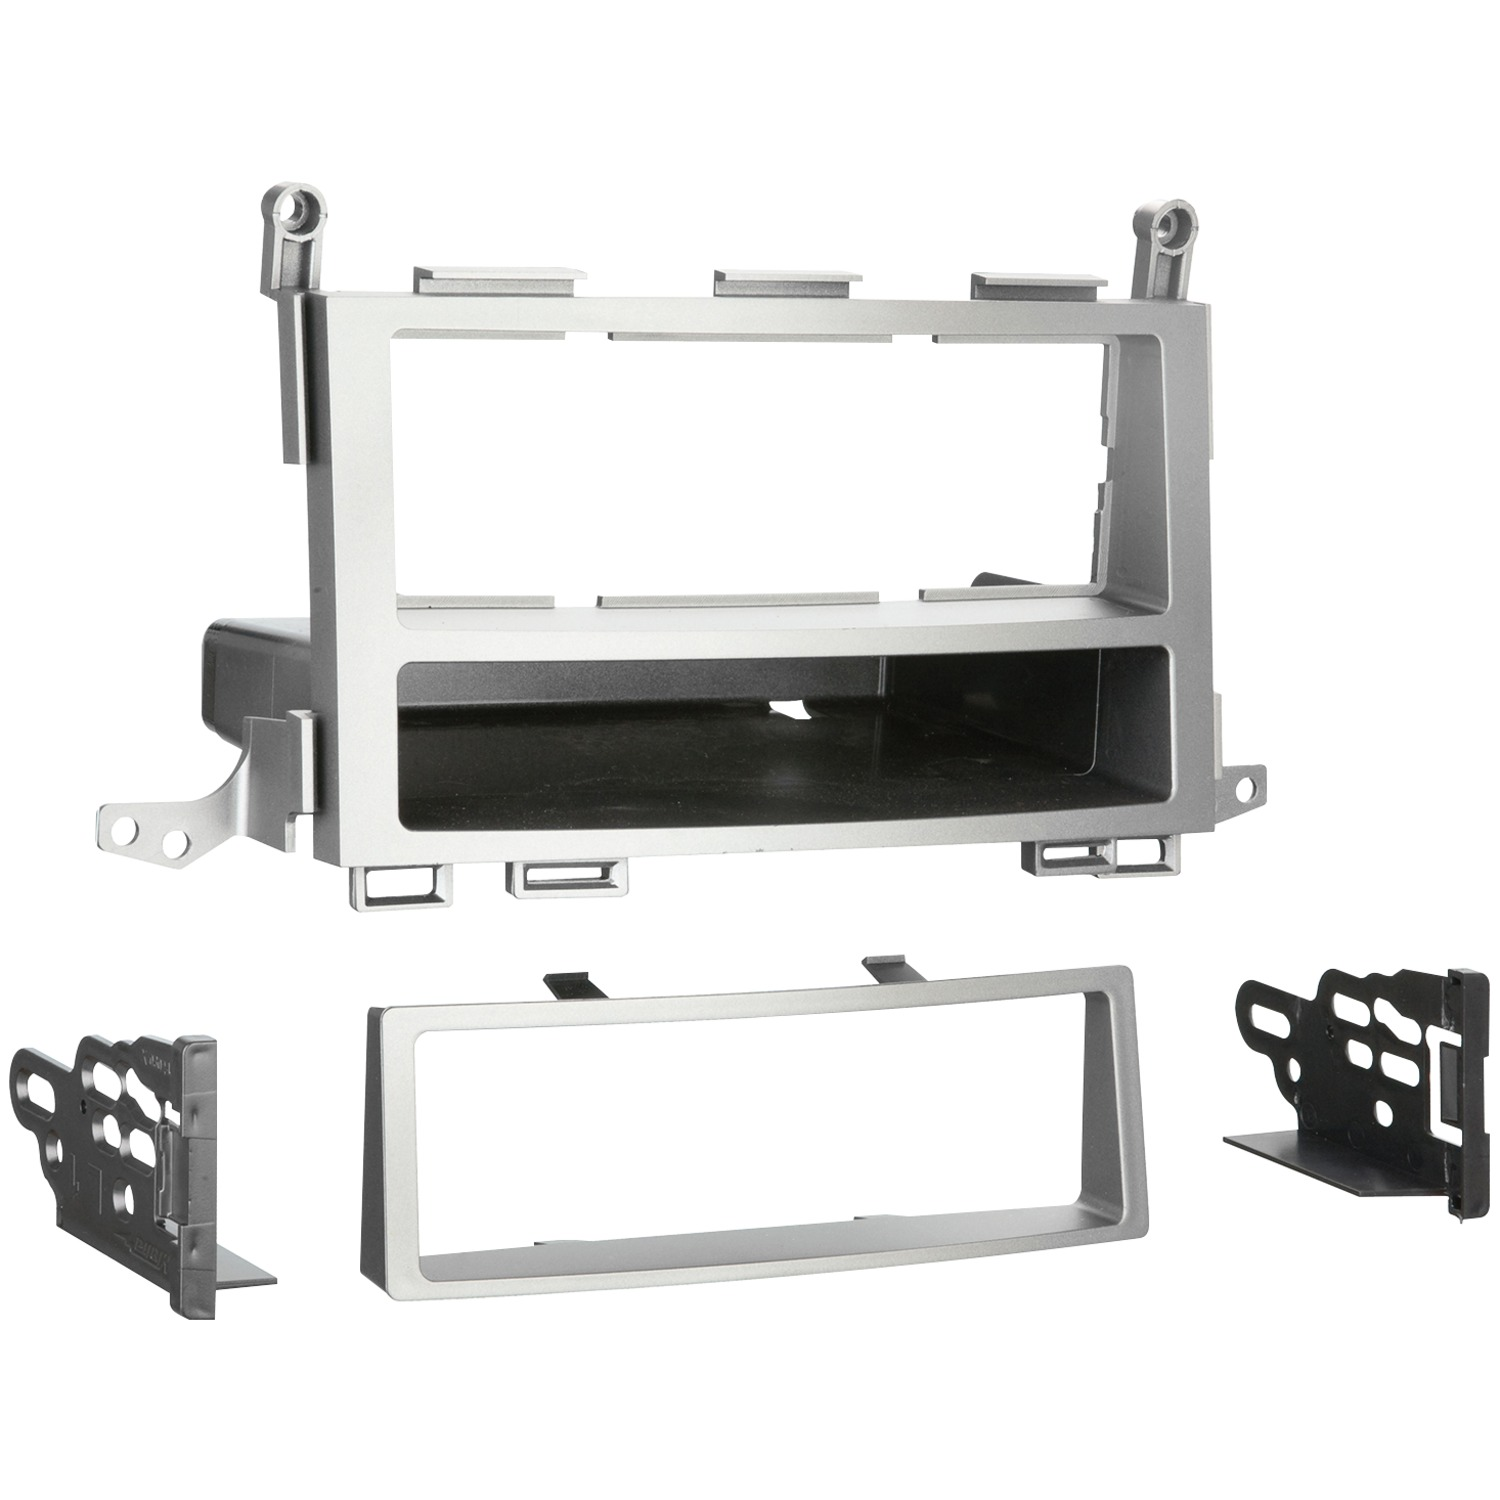 Metra 99-8225G Mounting Kit For Toyota Venza 2009-2015